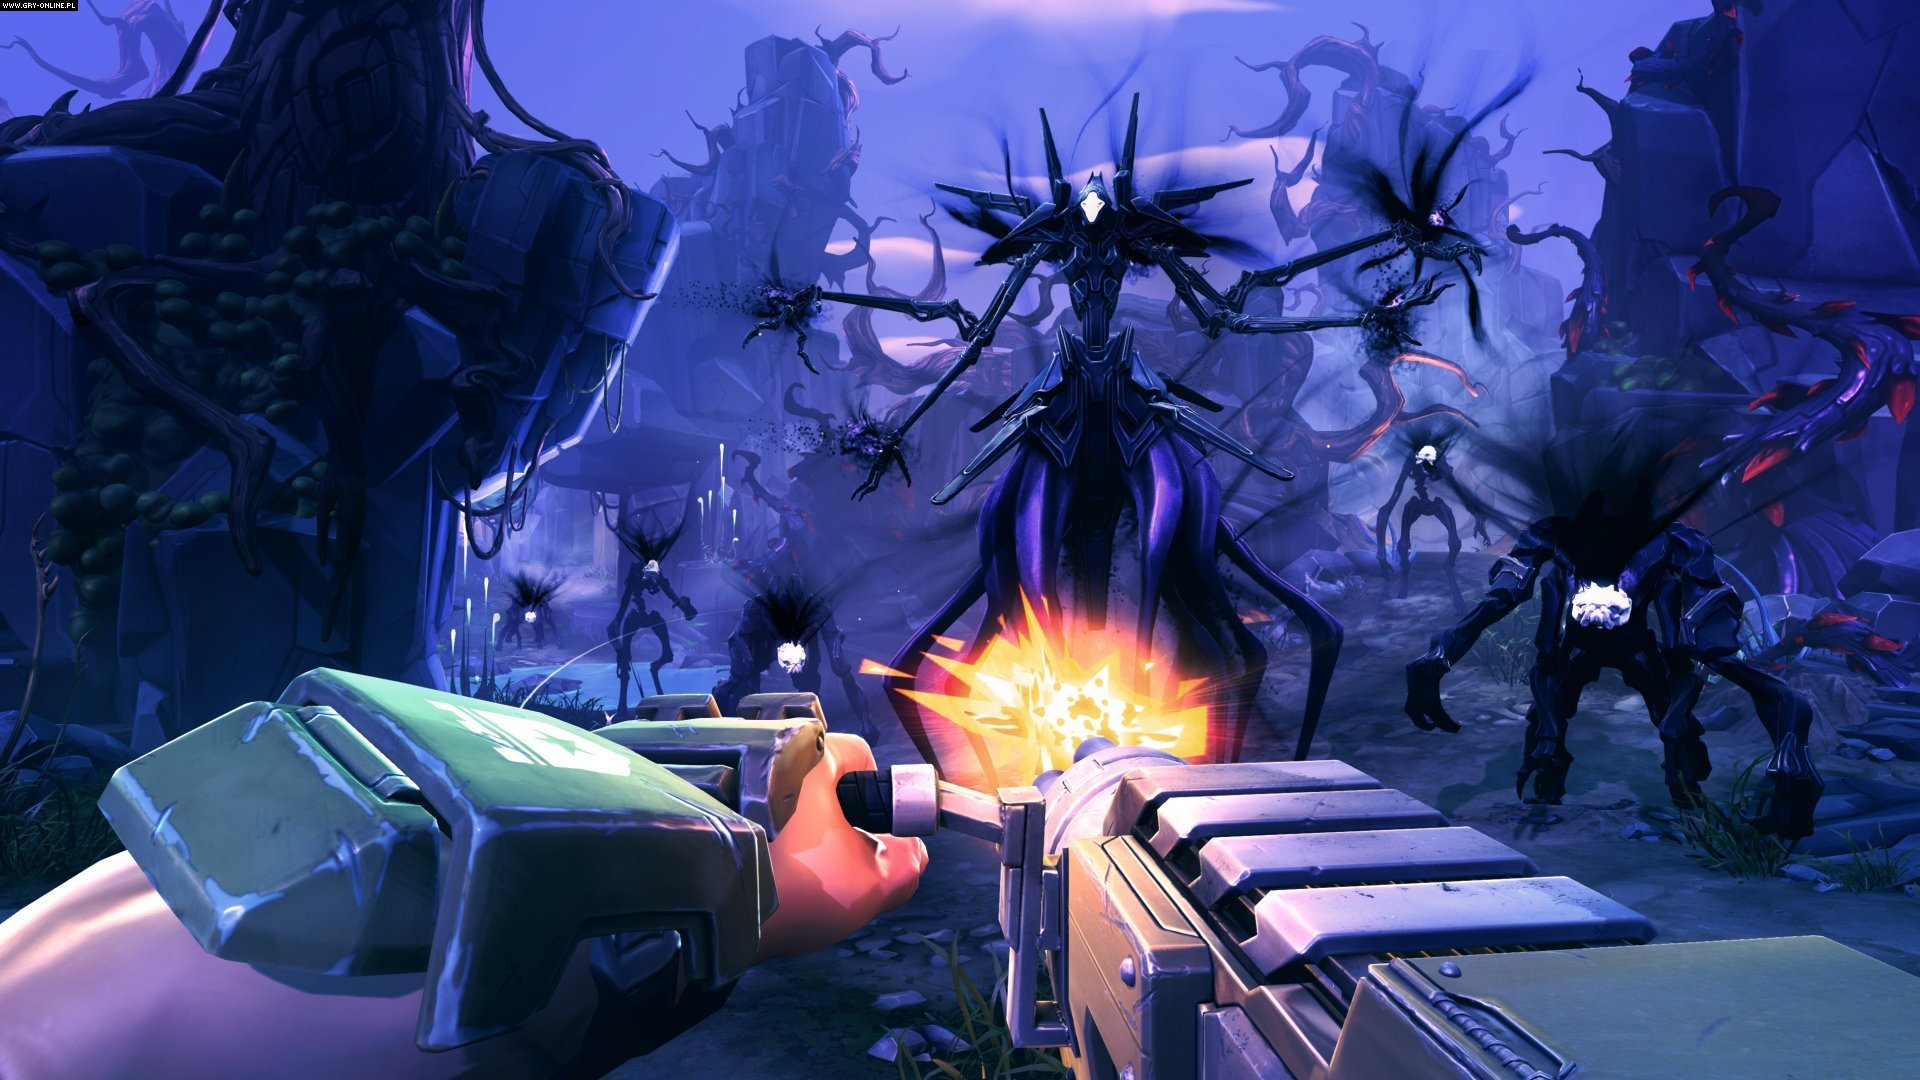 Battleborn PC, PS4, XONE Games Image 63/97, Gearbox Software, 2K Games